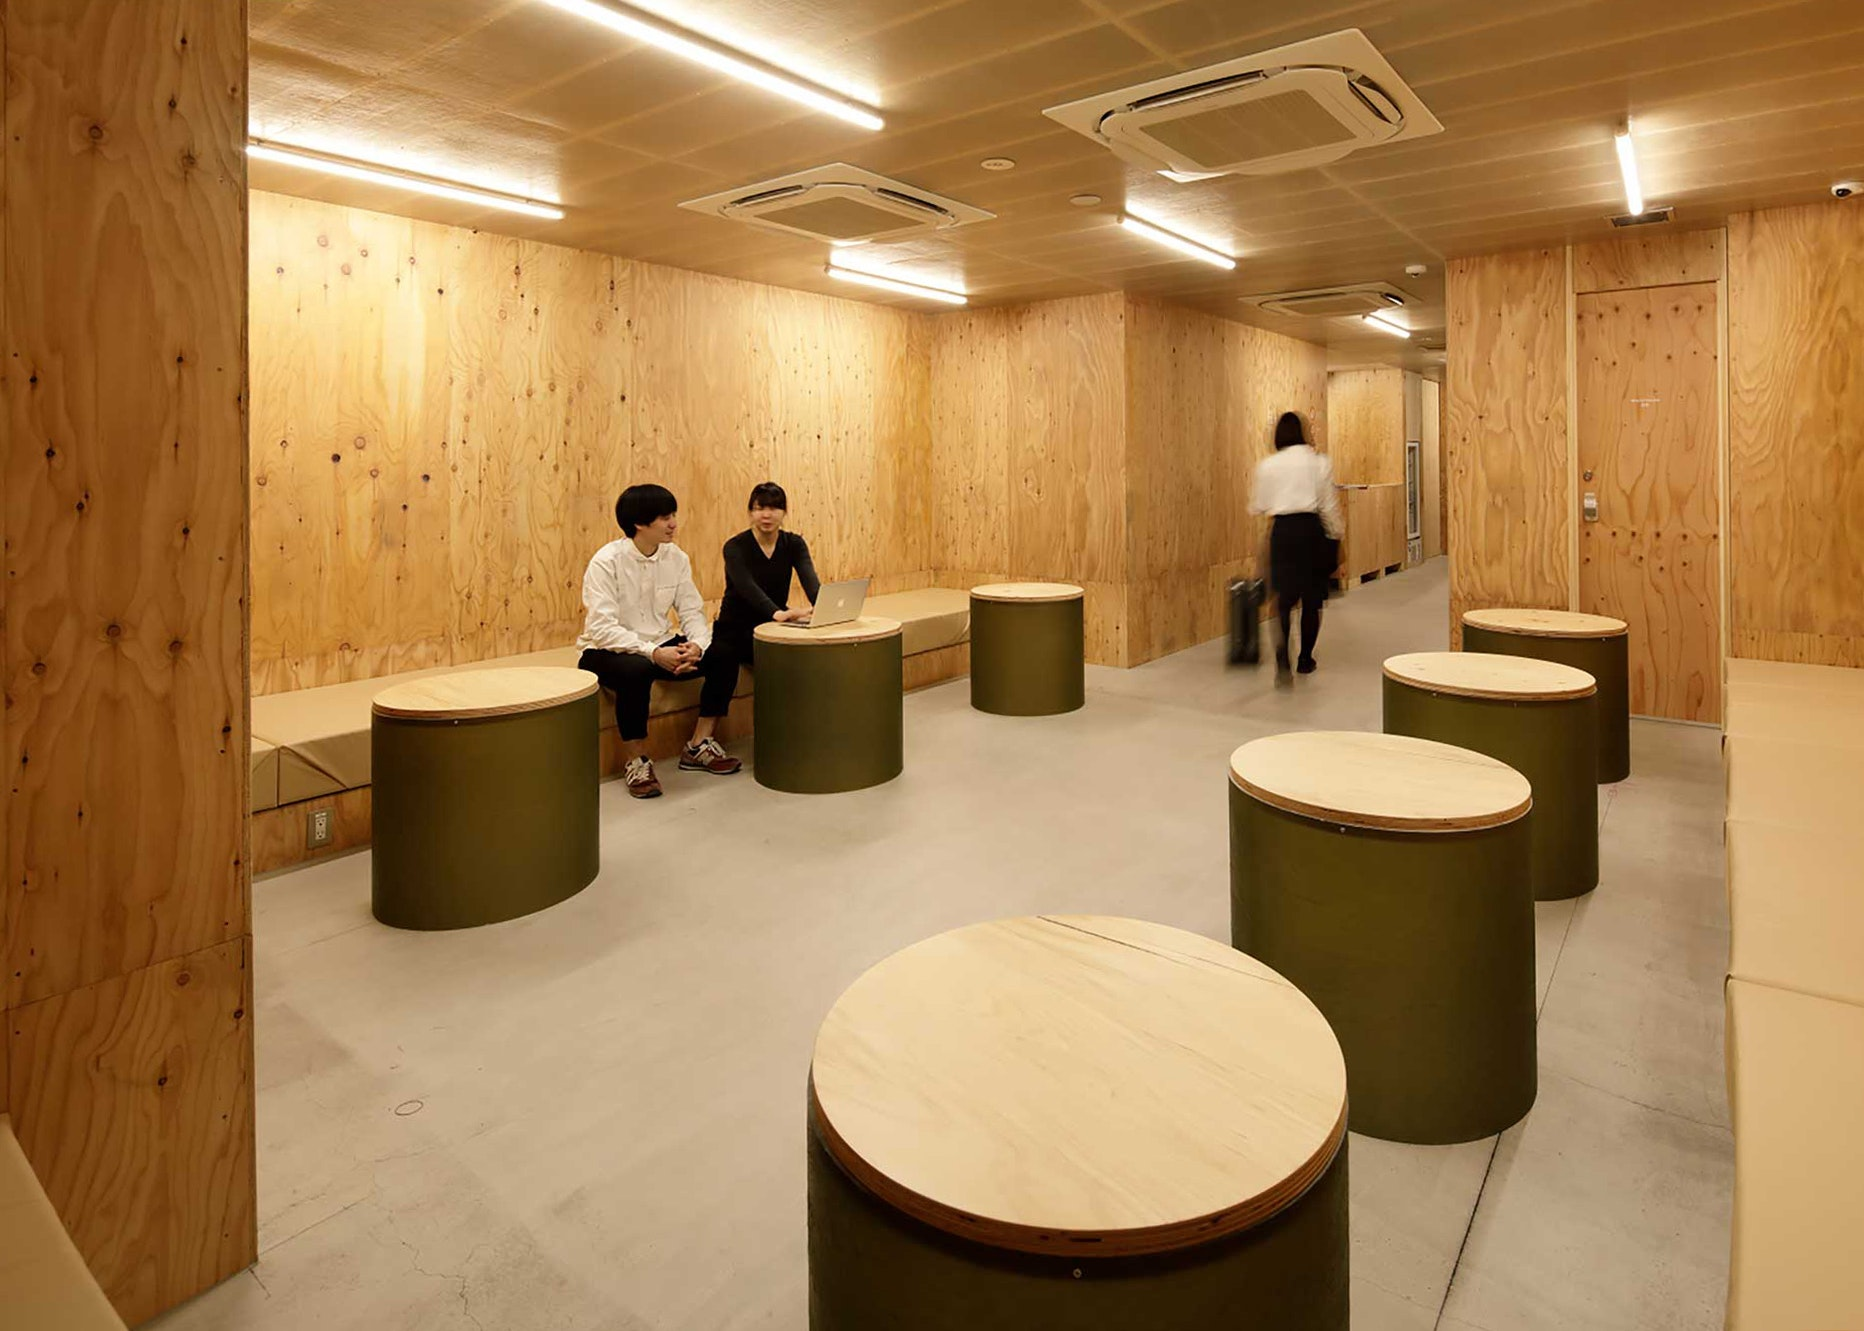 Capsule hotels like Do-C have inched closer toward luxury without losing their convenience factor.